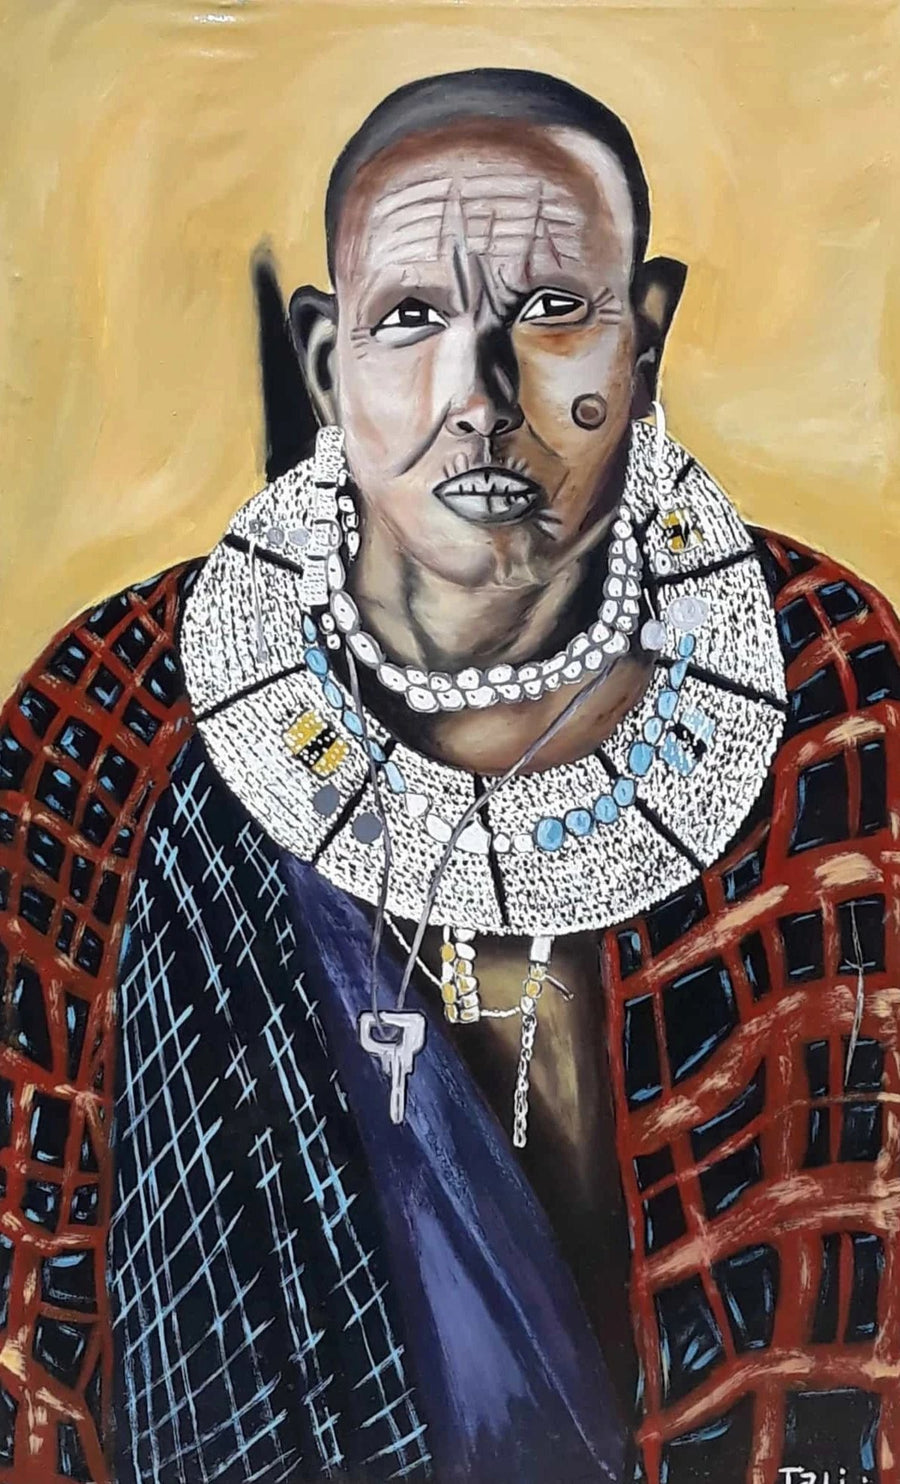 A handmade painting of a Maasai man wearing Maasai clothes